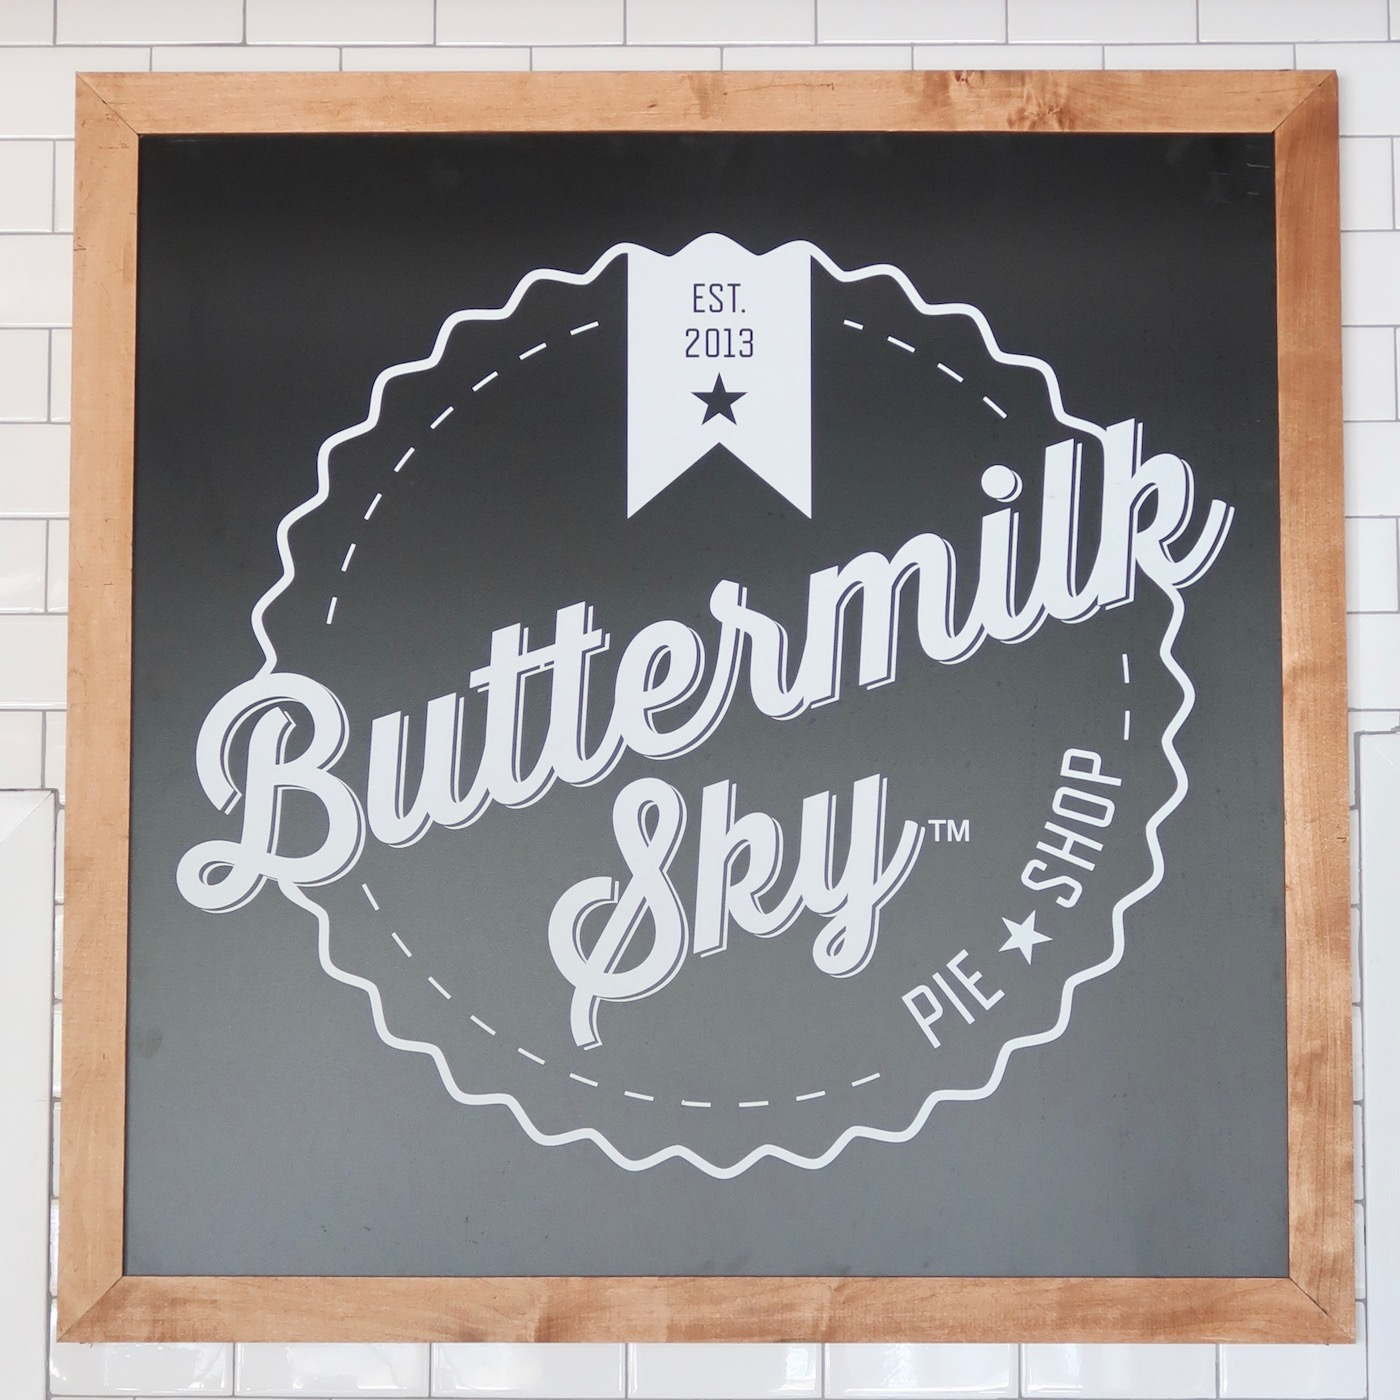 Buttermilk Sky Pie Shop // www.thehiveblog.com